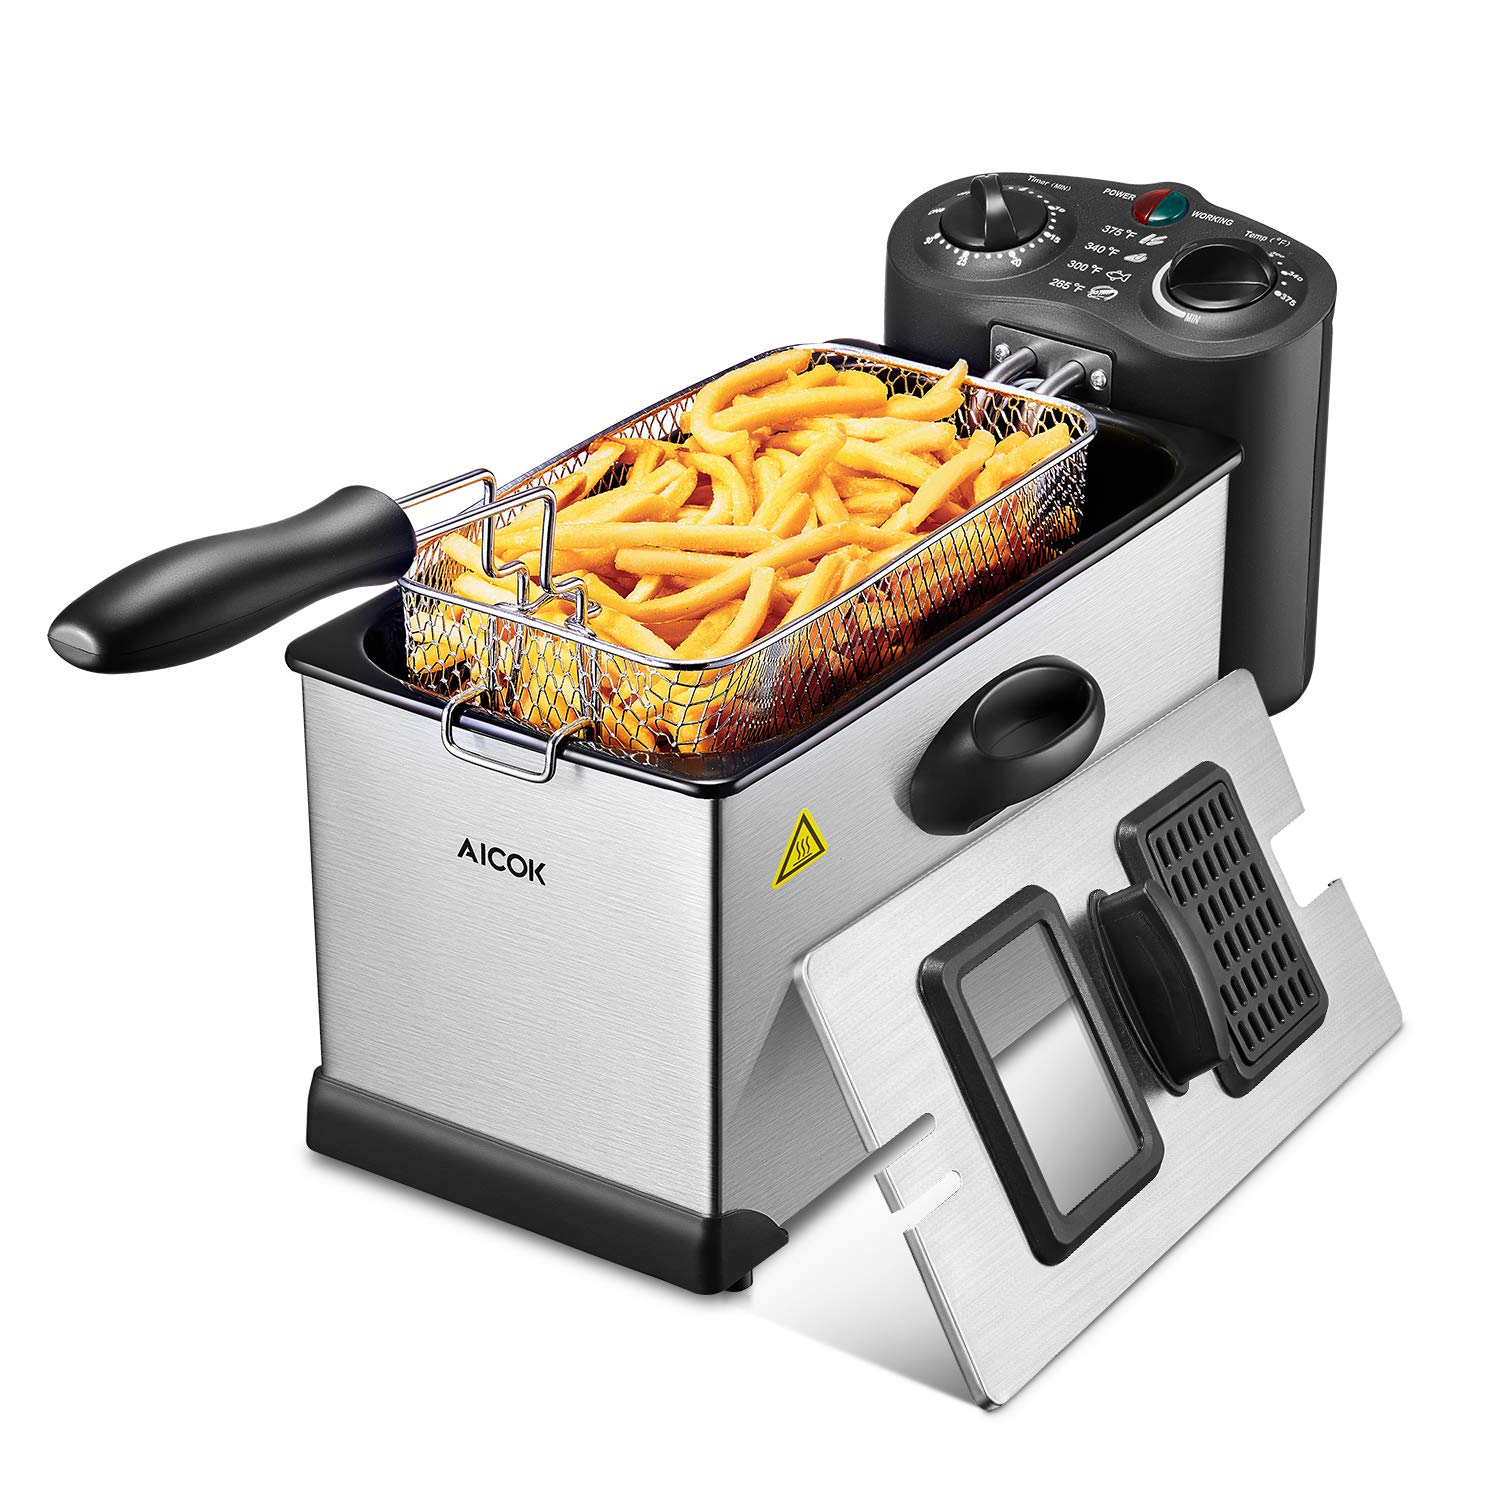 Aicok Deep Fryer, With Basket, 1700-Watt Stainless-Steel Oil Deep Fryer Machine with Adjustable Temperature & Timer, Fully Removable, Professional Grade by AICOOK